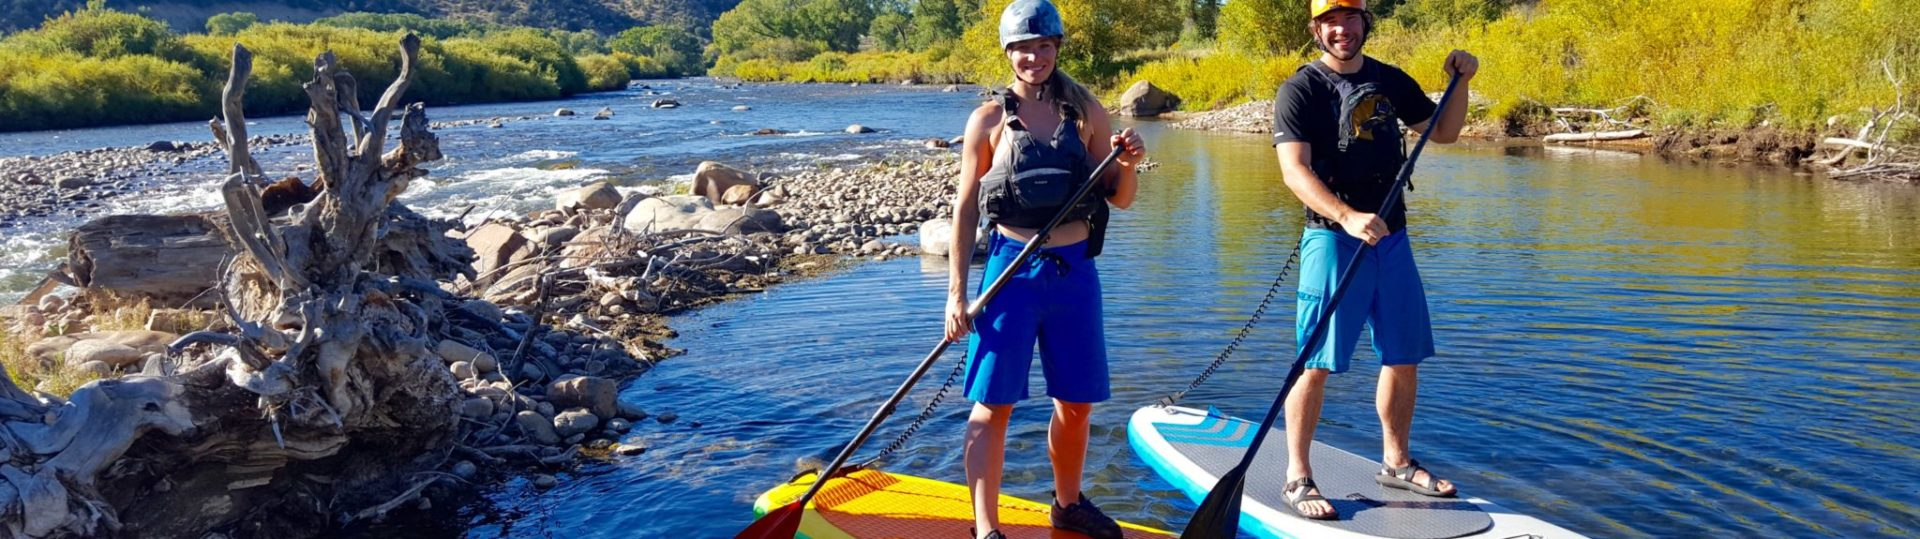 Colorado rafting fly fishing kayaking adventure trips for Colorado fishing trips